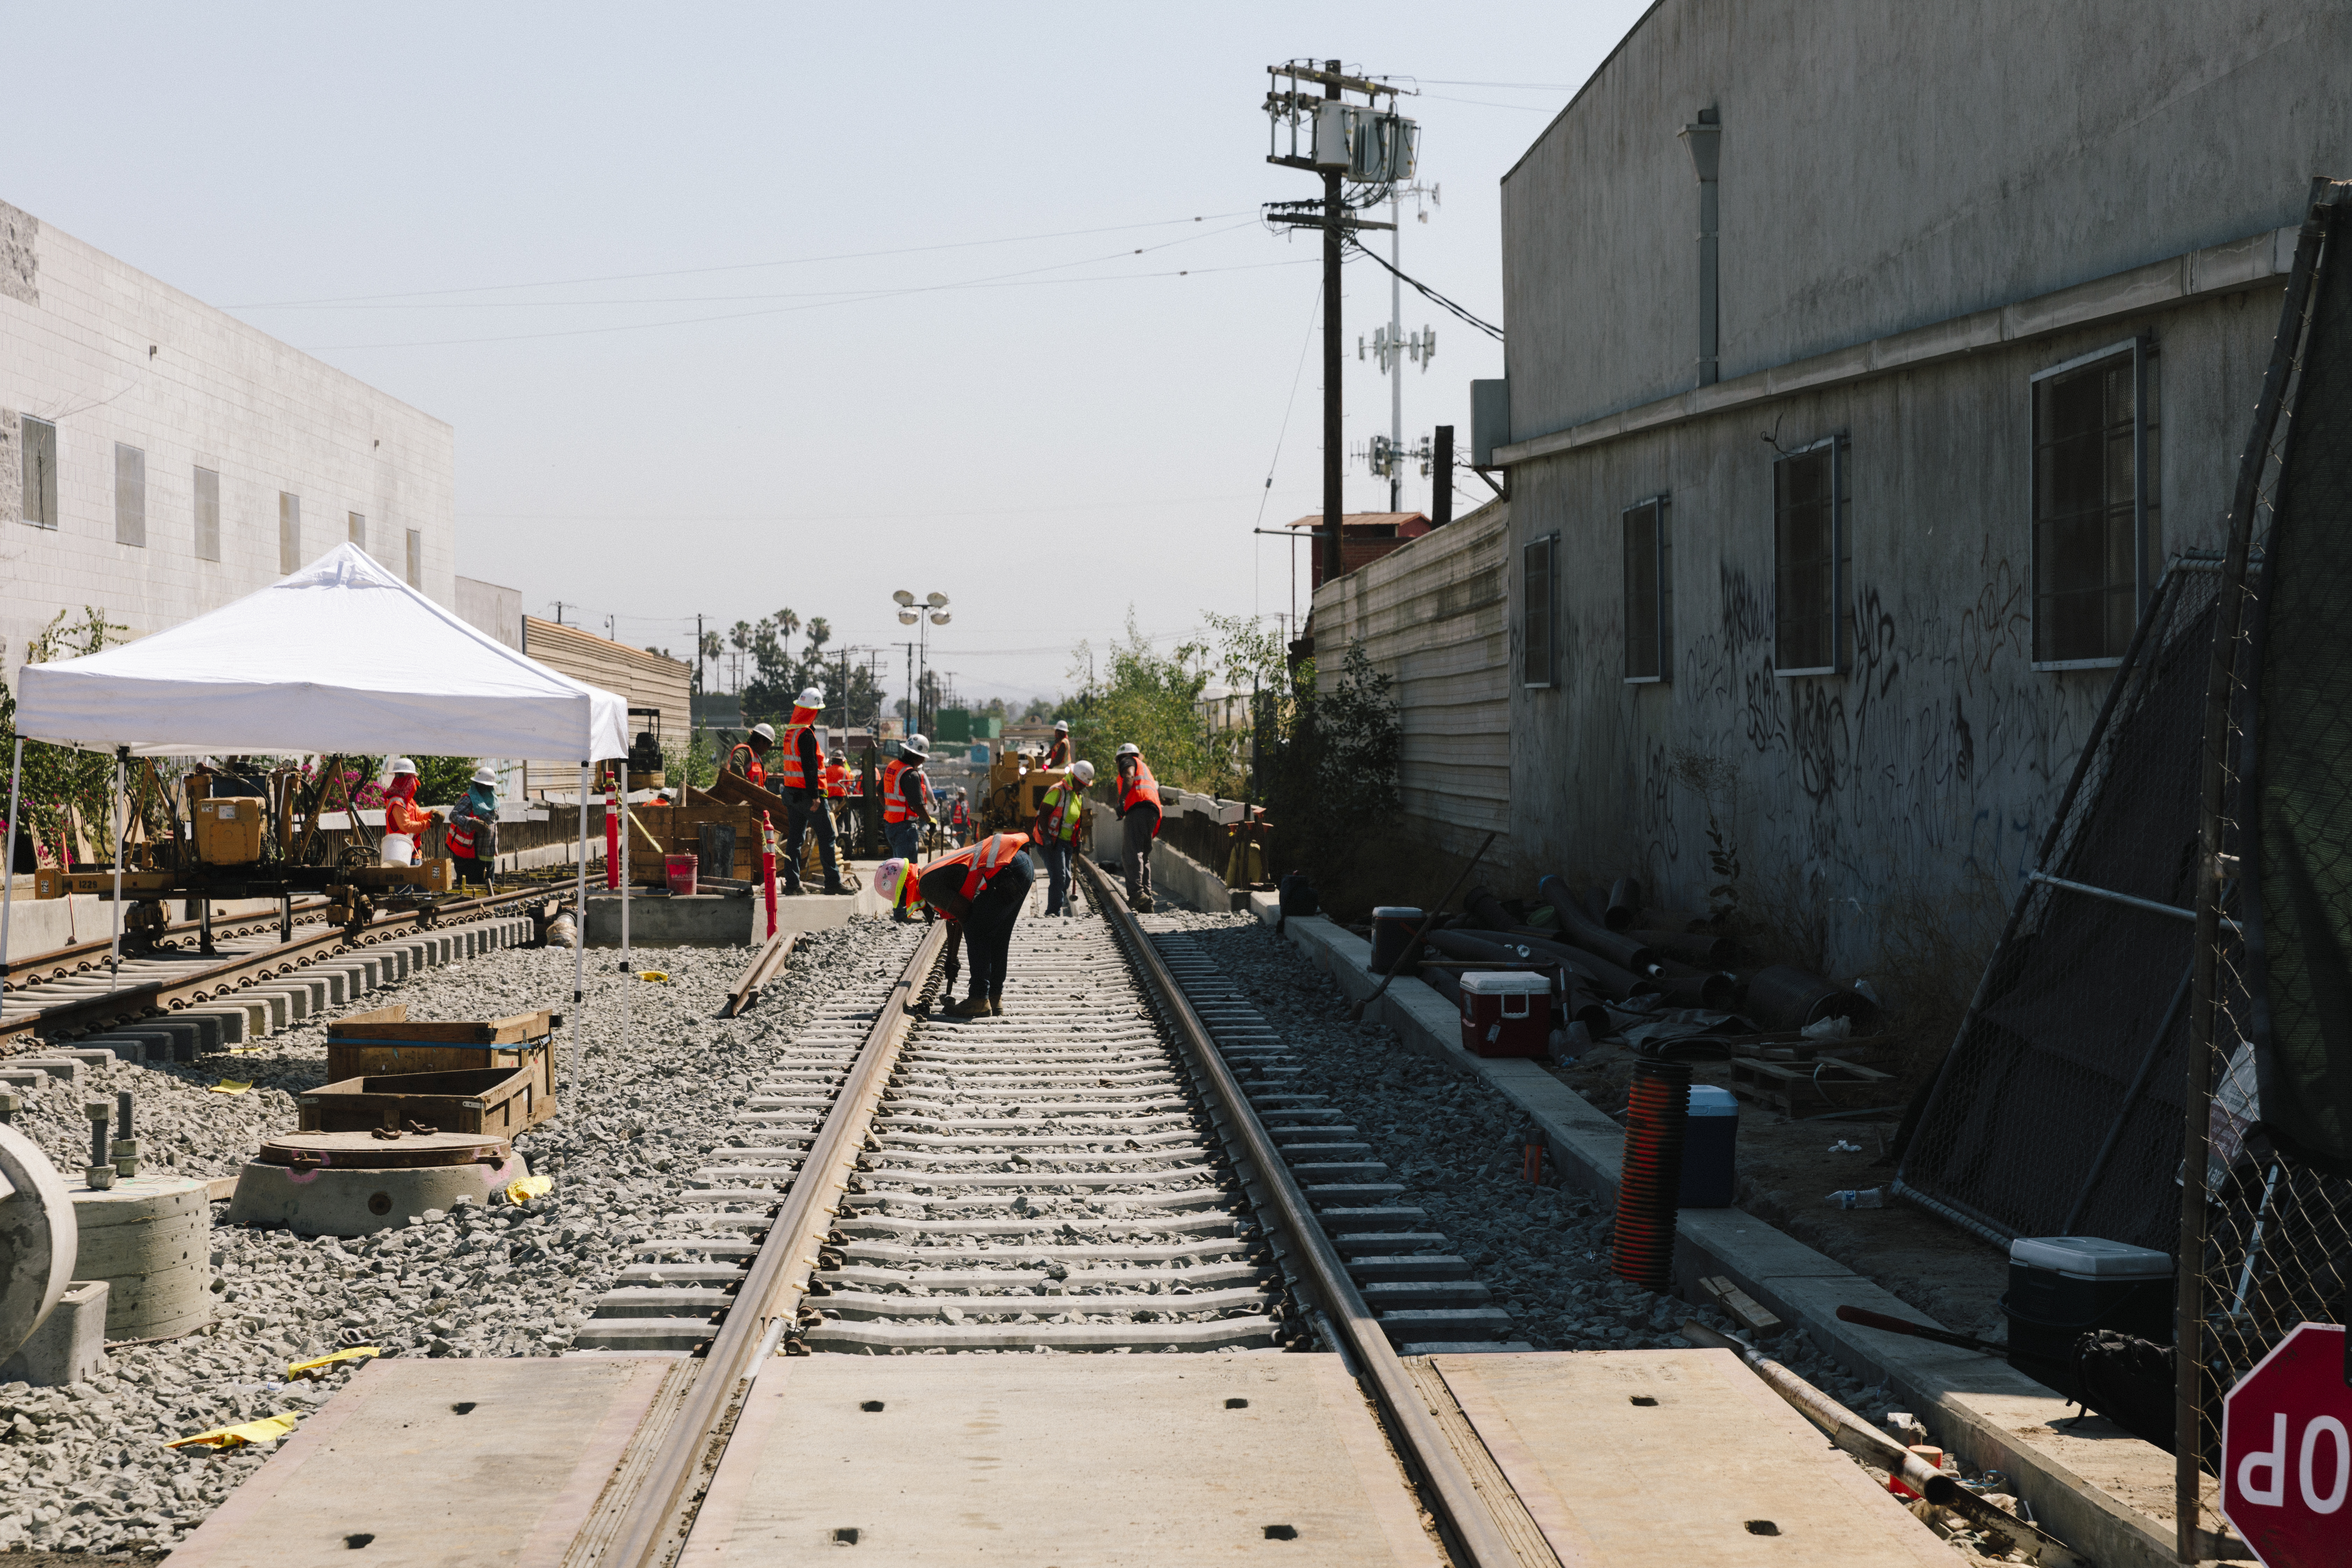 Workers gathered around train tracks, with construction equipment in the area